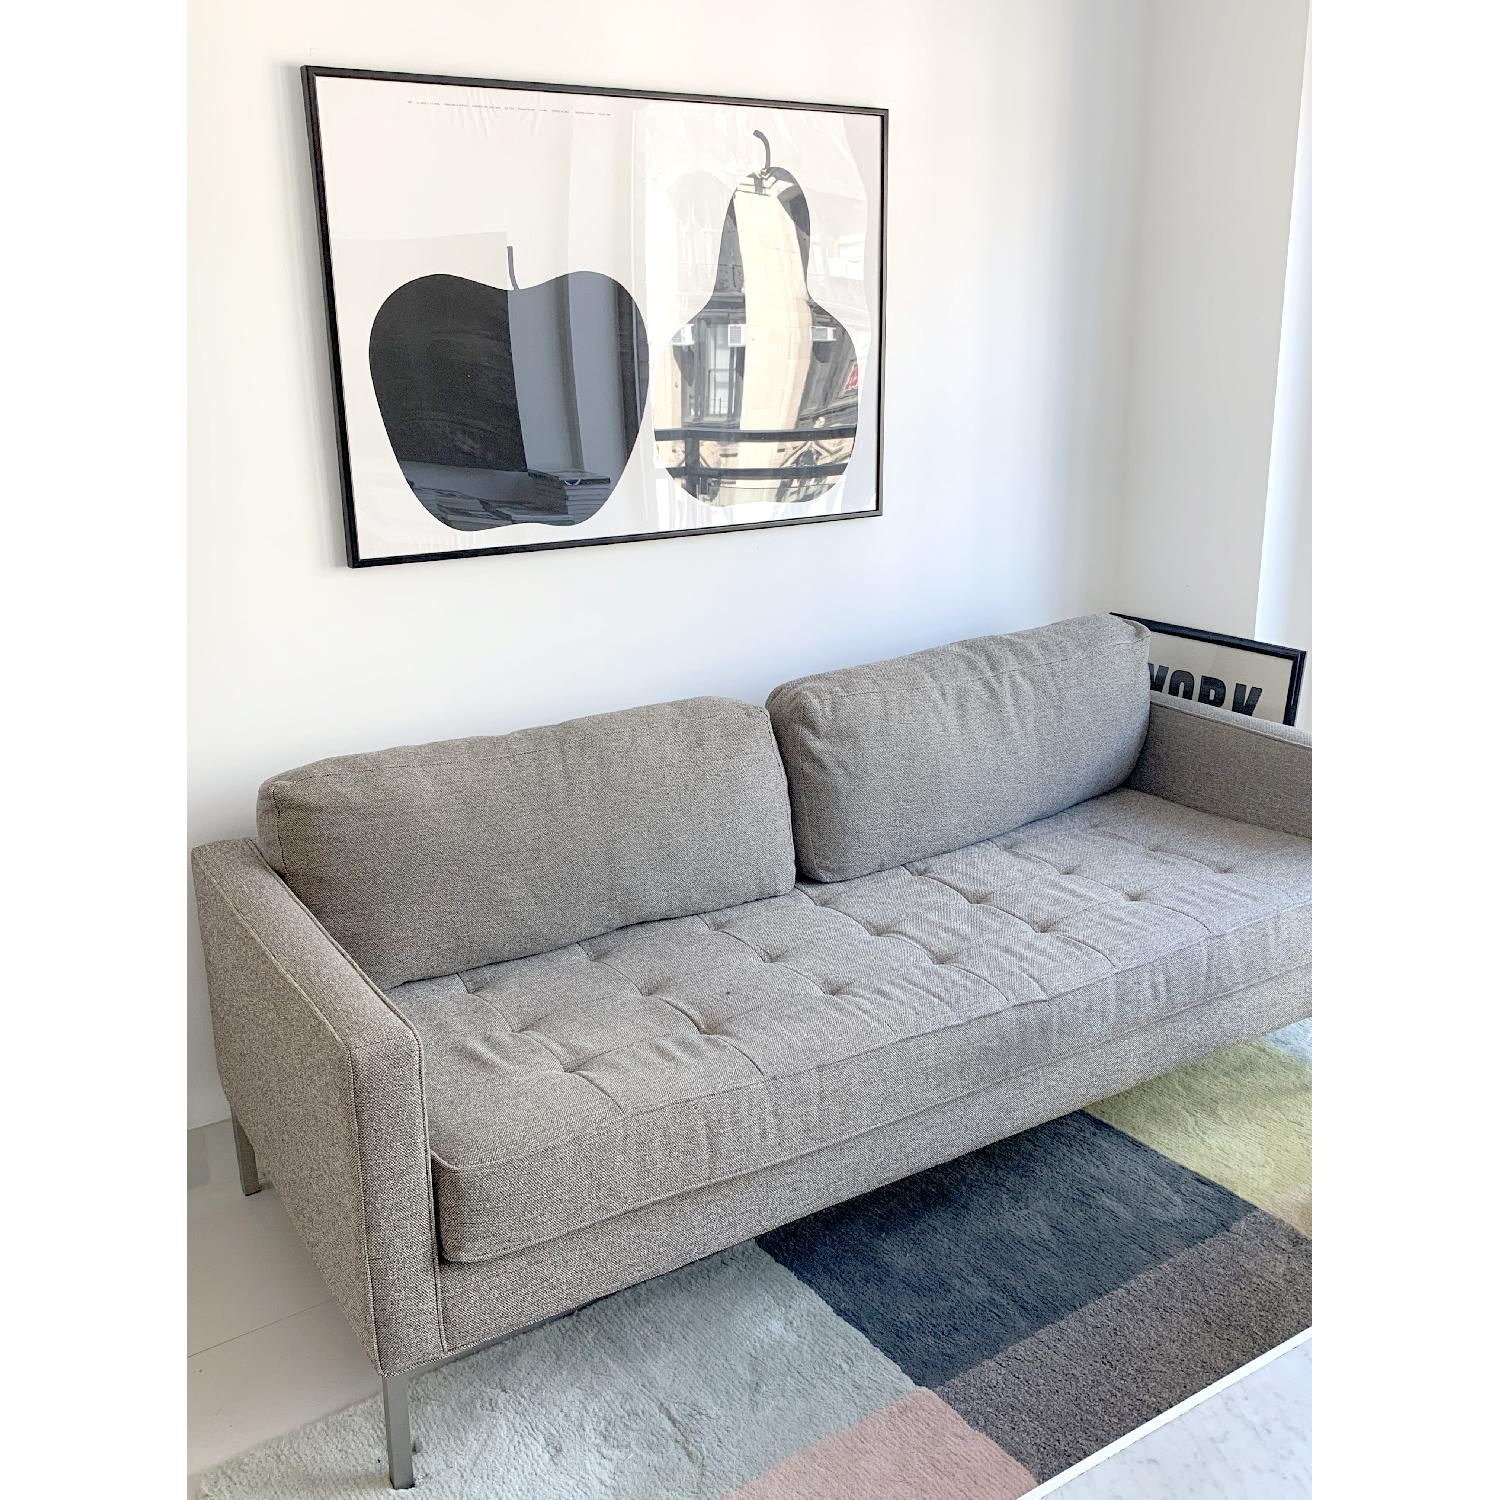 Blu Dot Paramount Sofa in Sanford Black